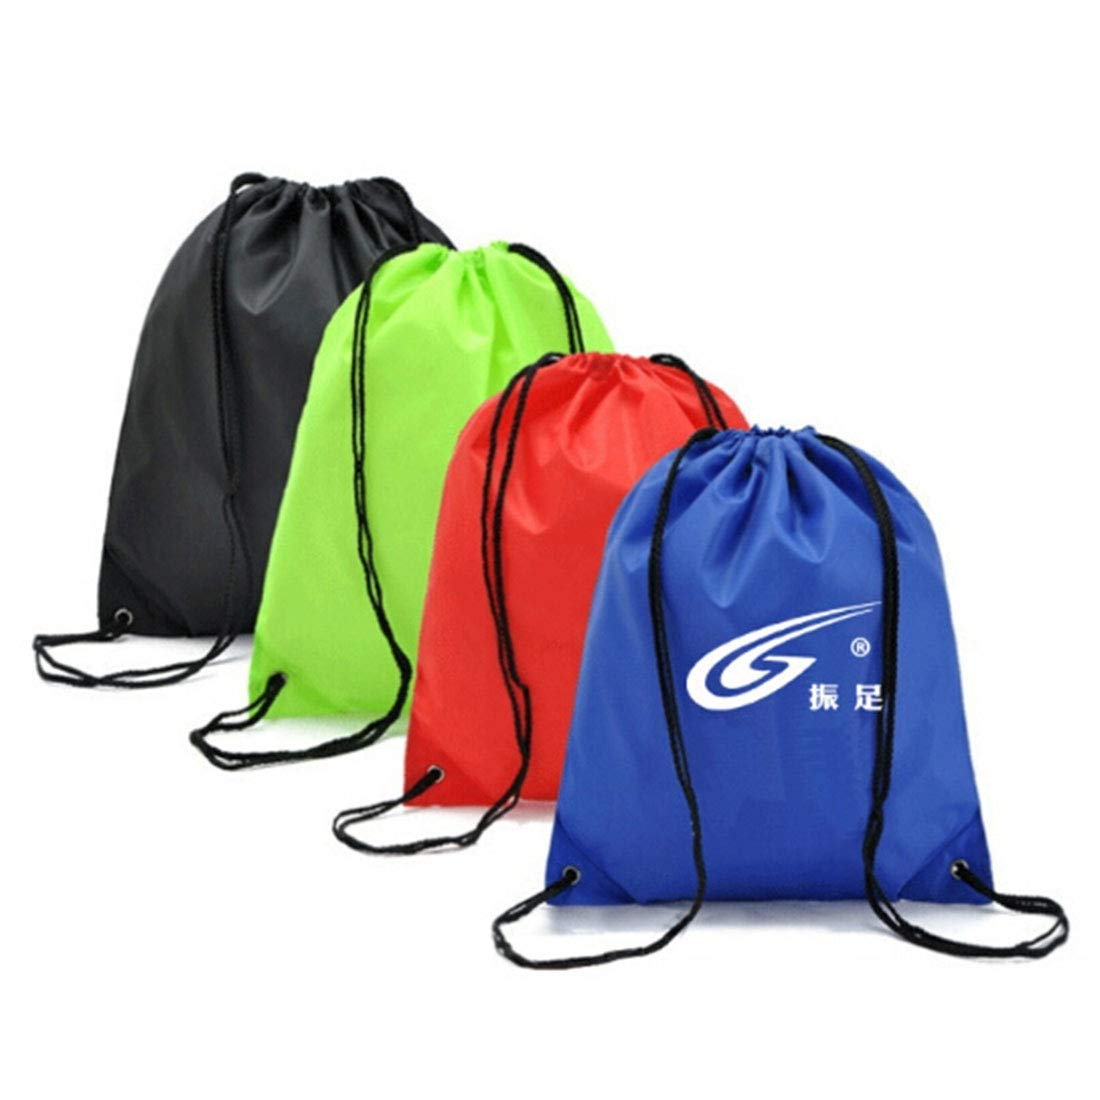 19134376a7 Amazon.com  MUMUWU Zhenzu Outside Sportsmanlike Bag Polyester Fabric Draw  Cord Bundle Backpack Football Bag (Color   Red)  Sports   Outdoors